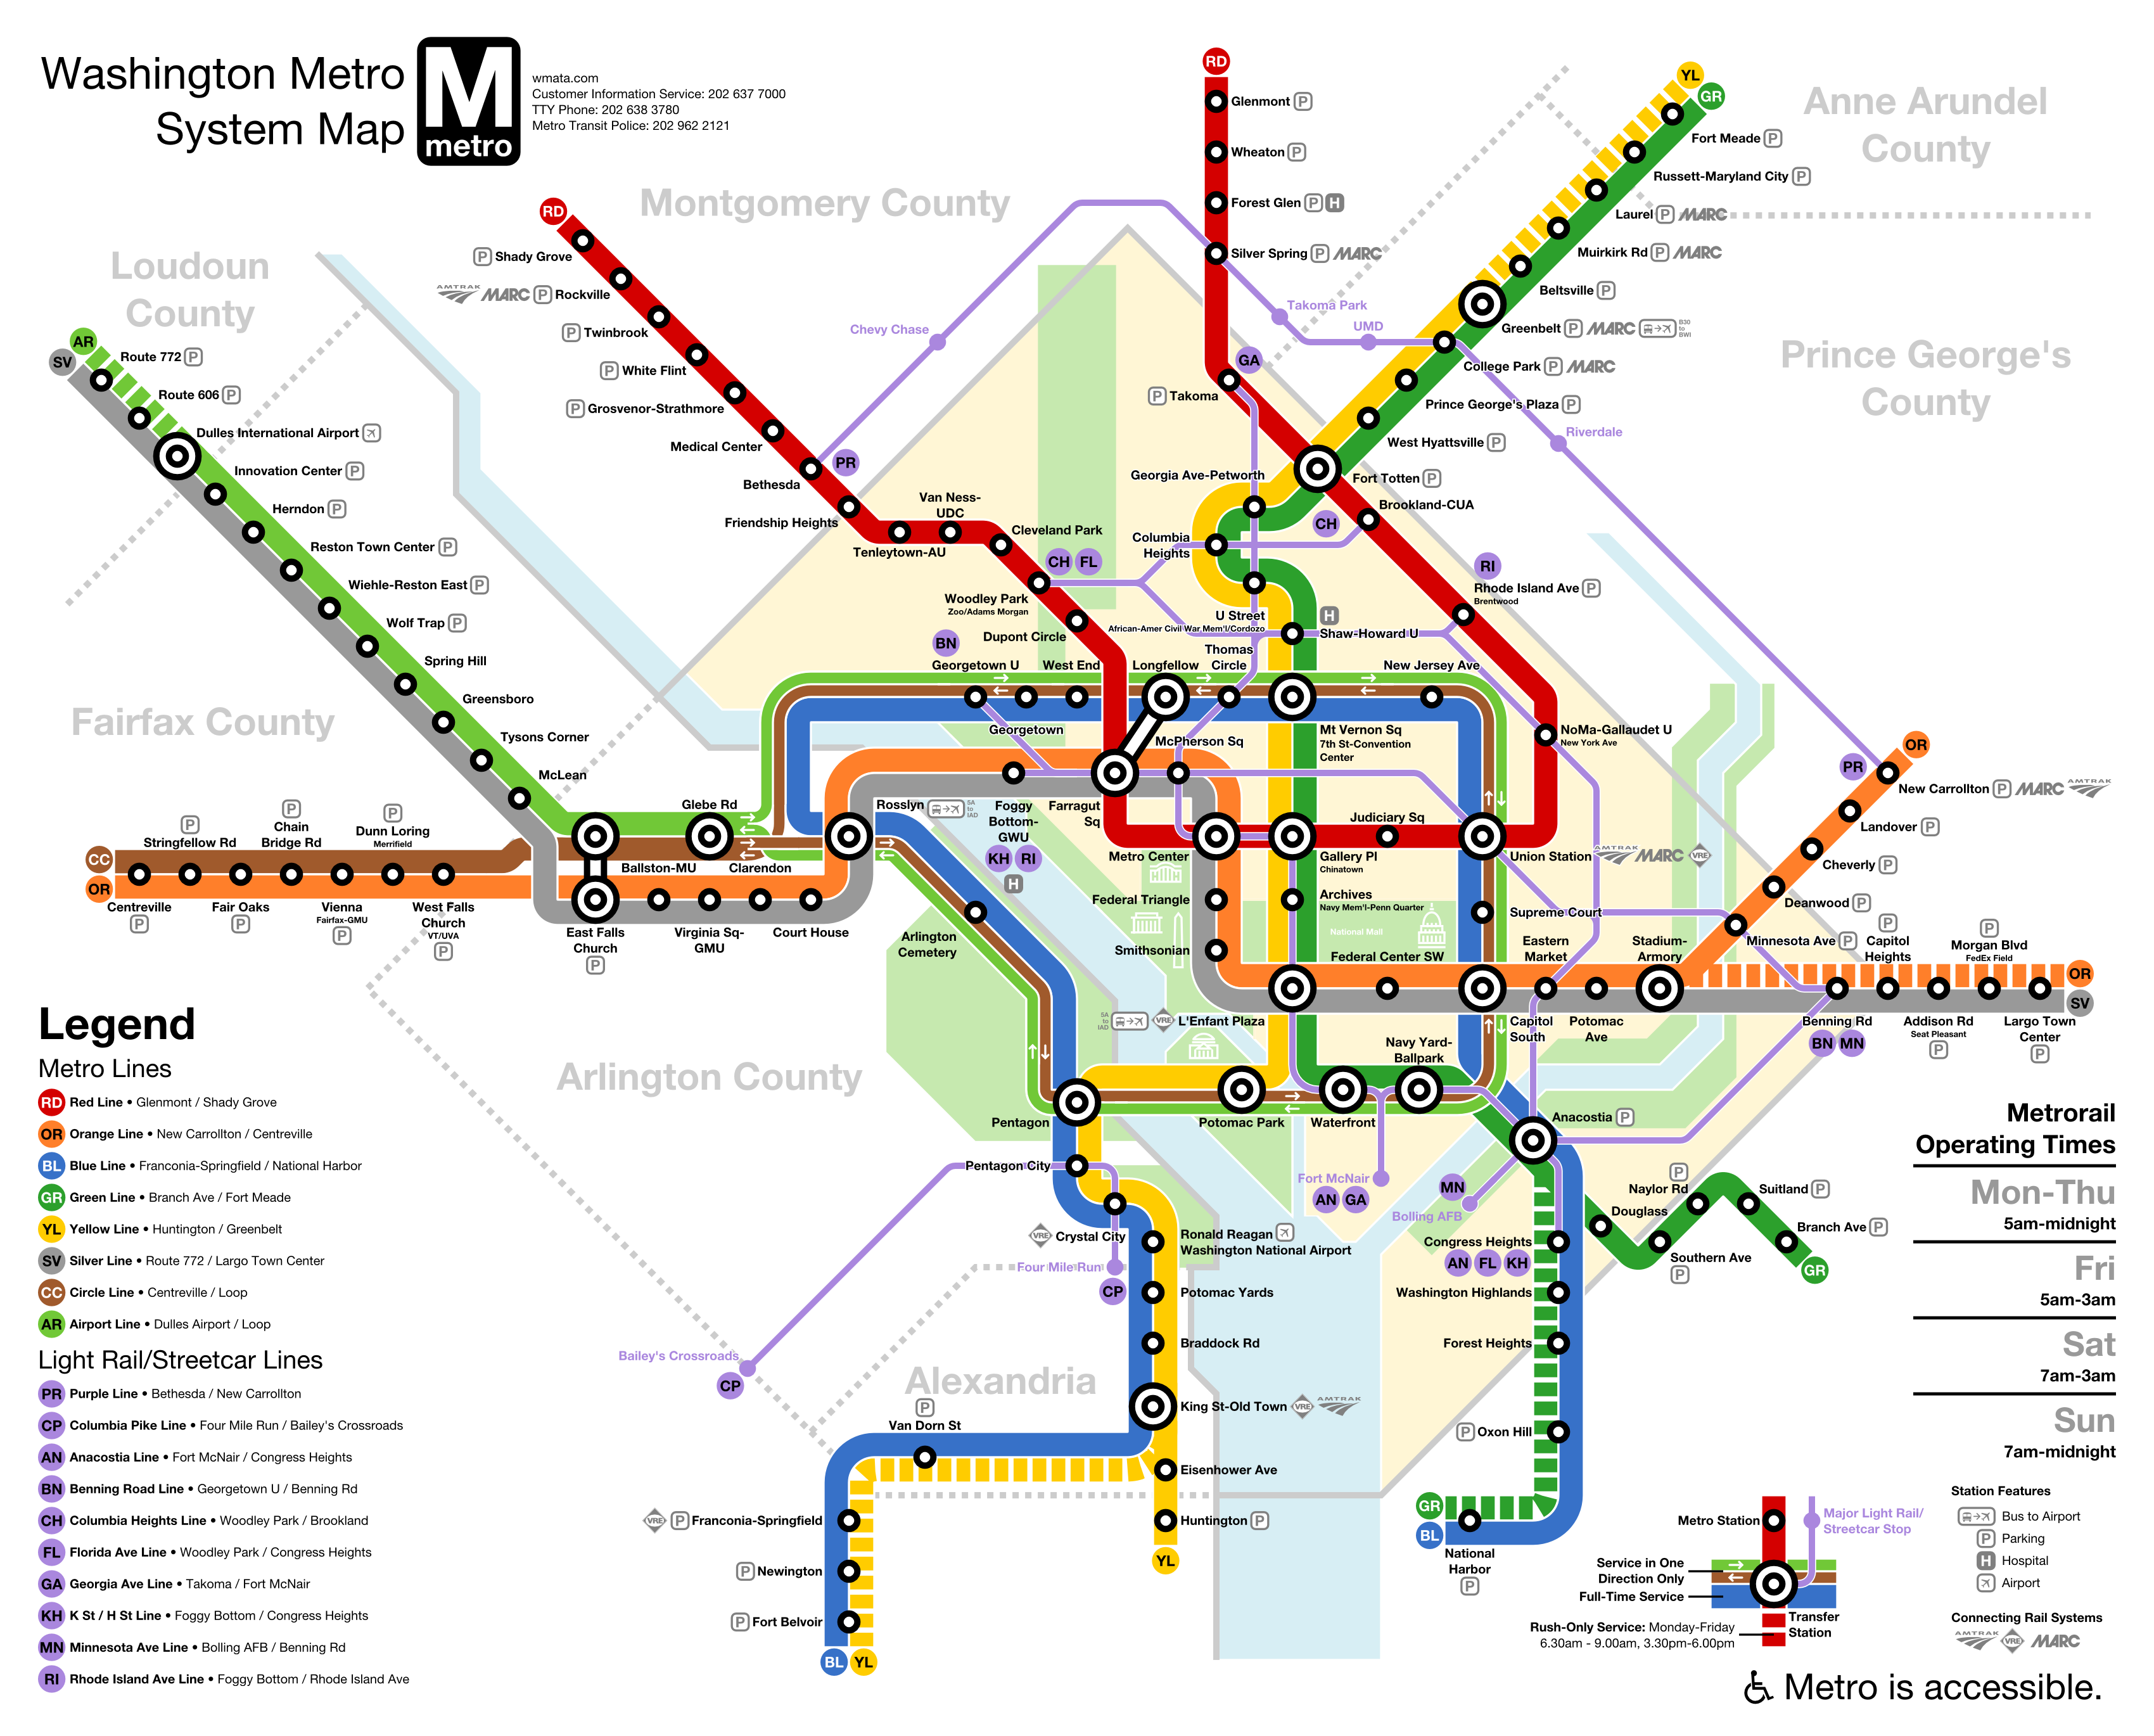 wmata washington dc metro downtown loop line subway expansion map not official with airport line and circle line expanded green orange yellow  [ 3400 x 2740 Pixel ]